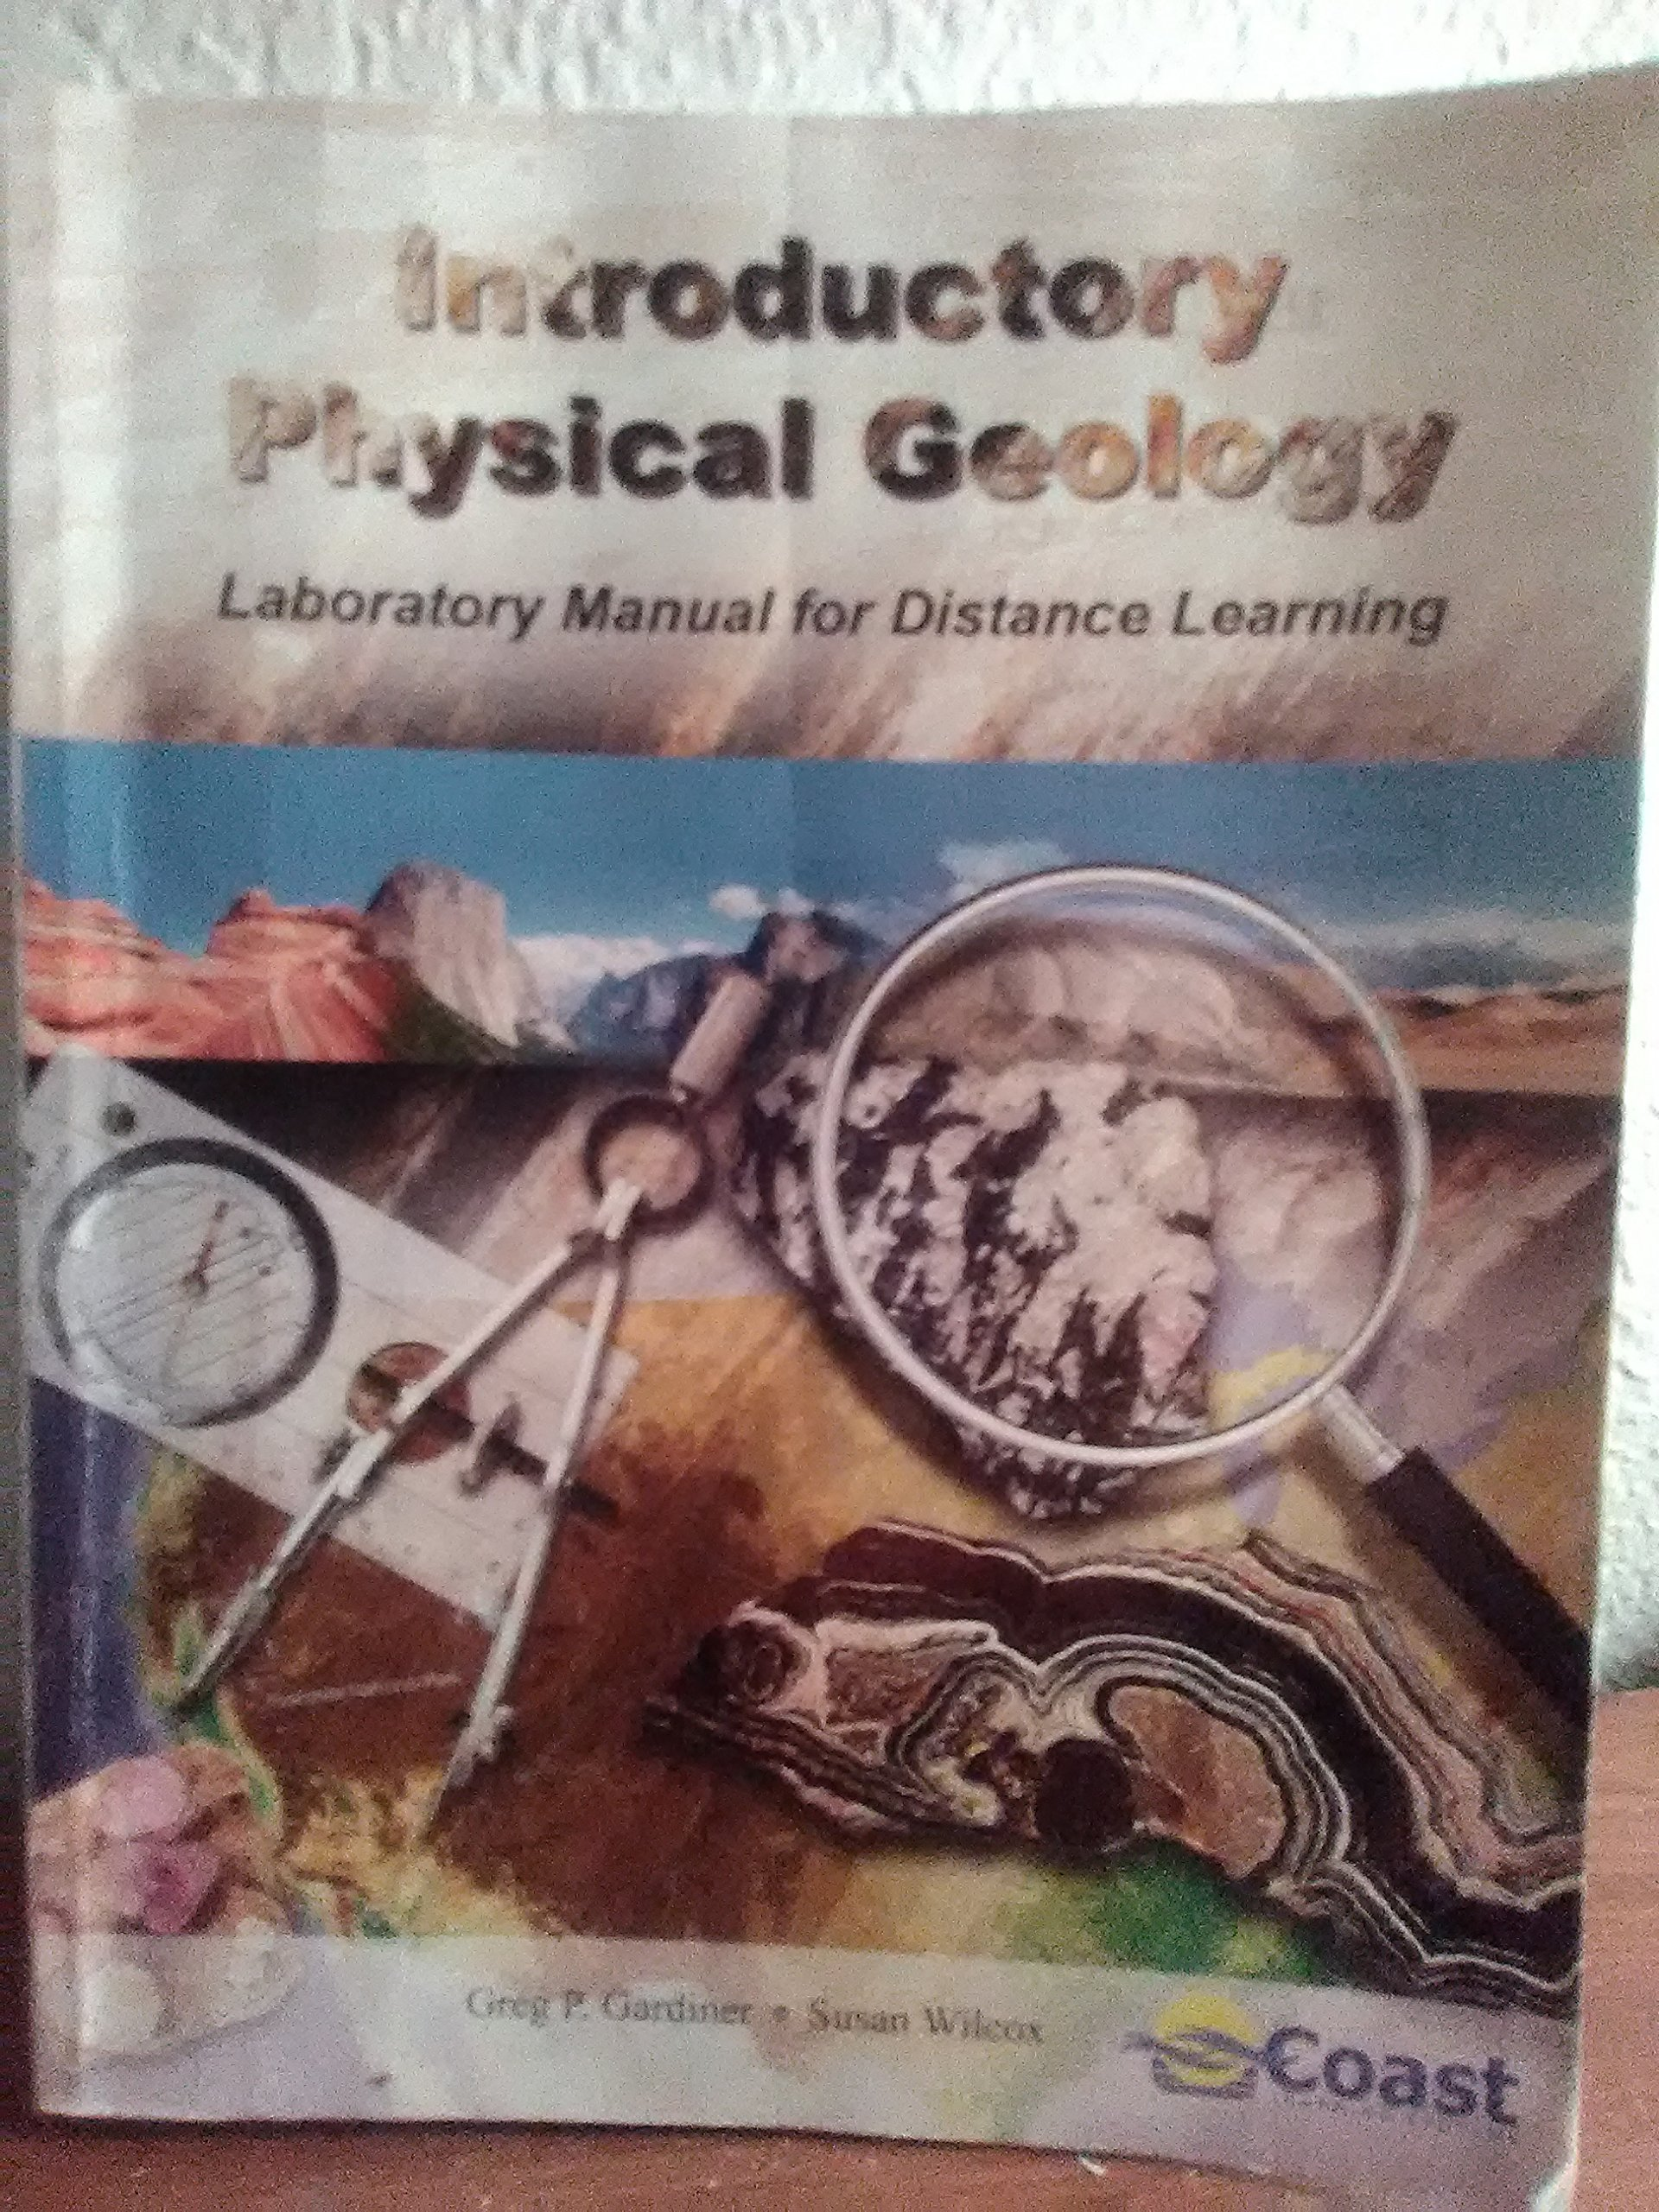 Introductory Physical Geology Laboratory Manual for Distance Learning: G. &  Wilcox, S. Gardner: 9781465205094: Amazon.com: Books